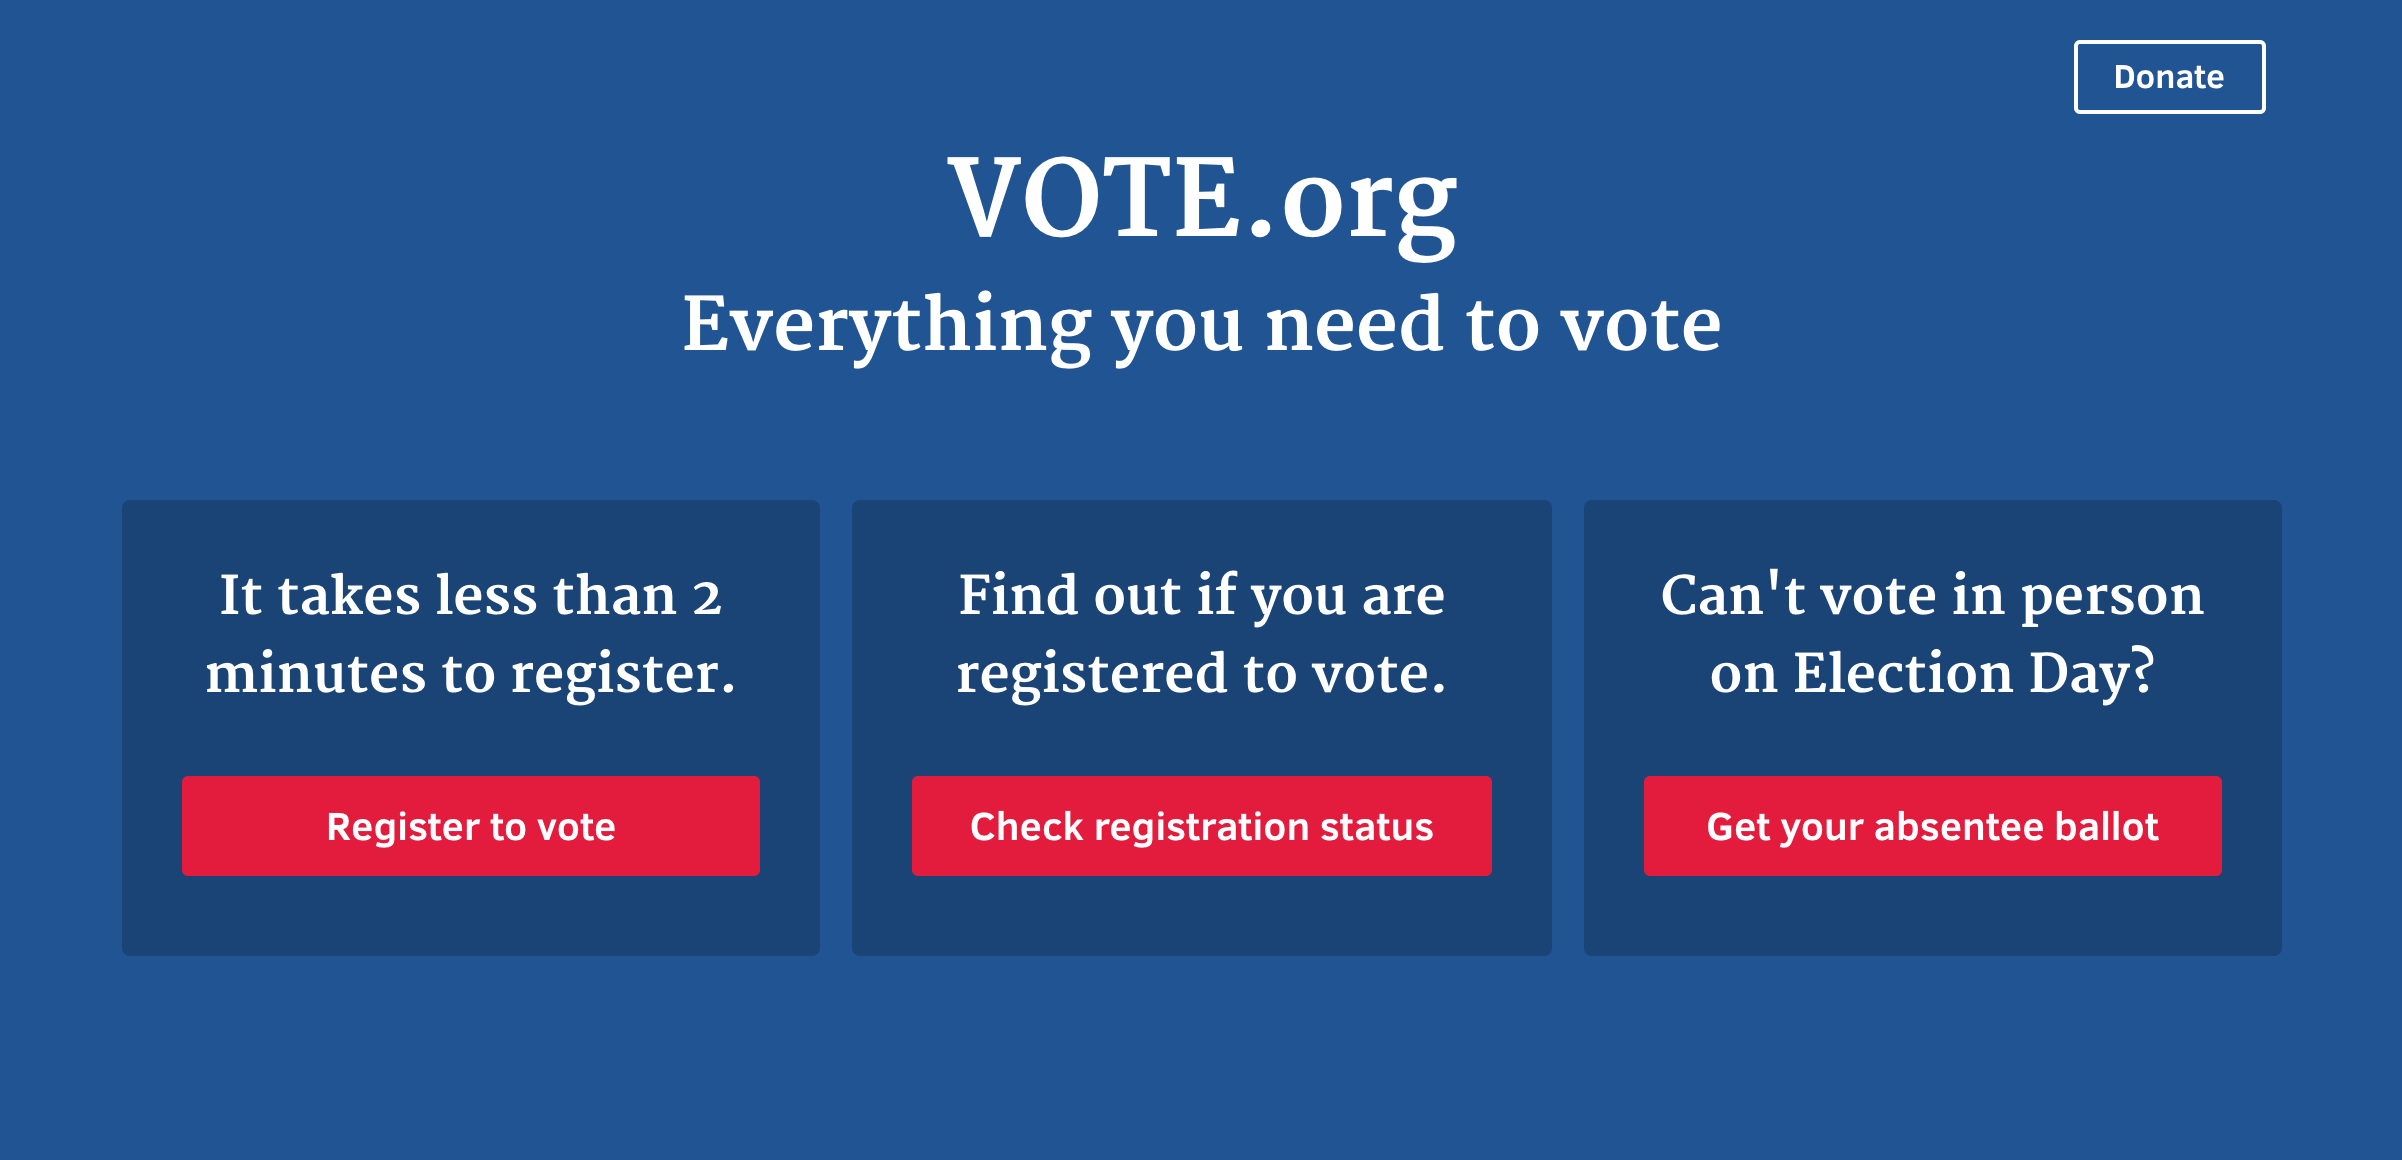 Vote.org's homepage is clear, clean, and simple to navigate, making it the ideal tool to help register Millennial or first-time voters.